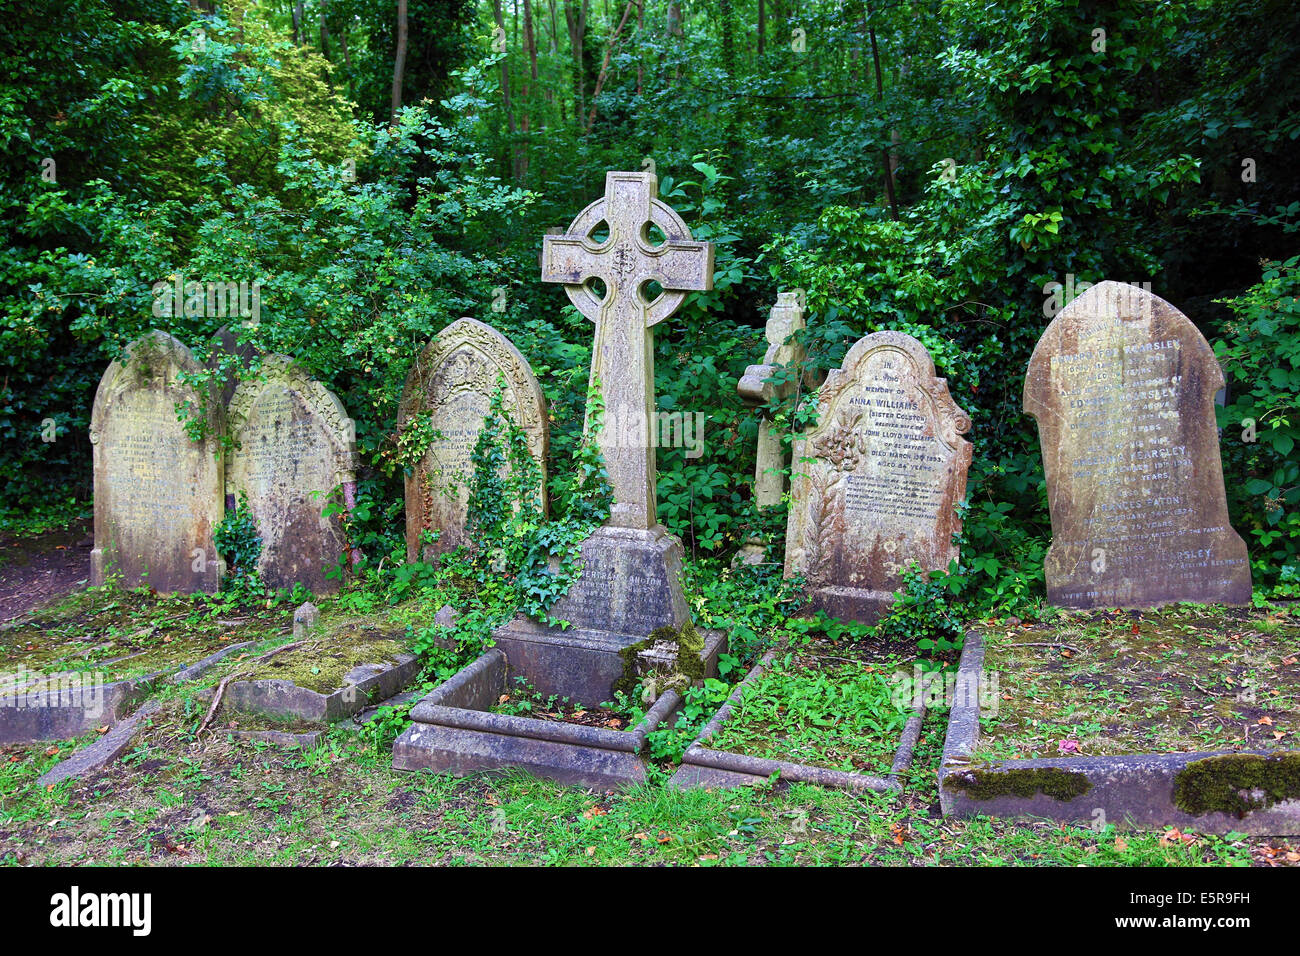 Graves in the Graveyard of Highgate Cemetery, London, England. Stock Photo